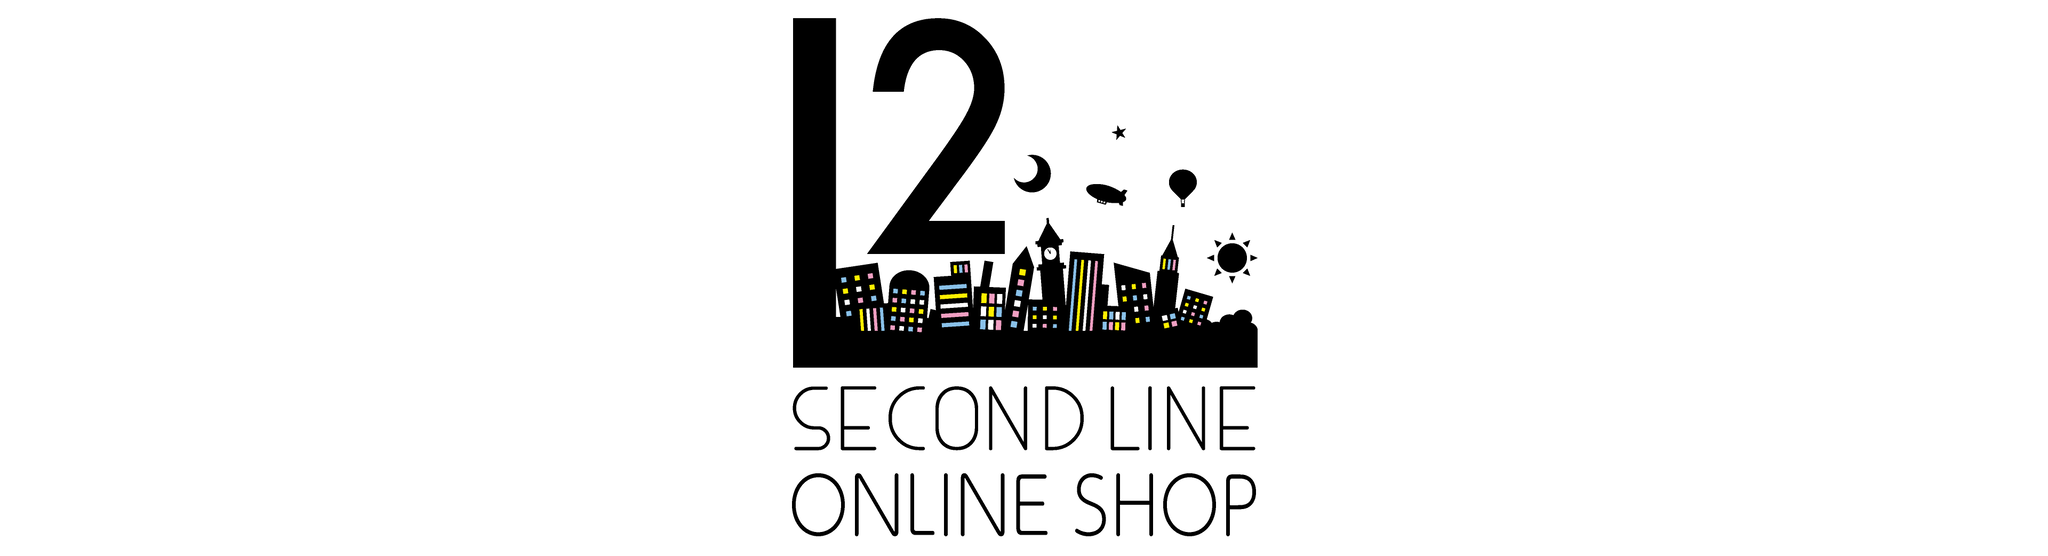 SECOND LINE Online Shop